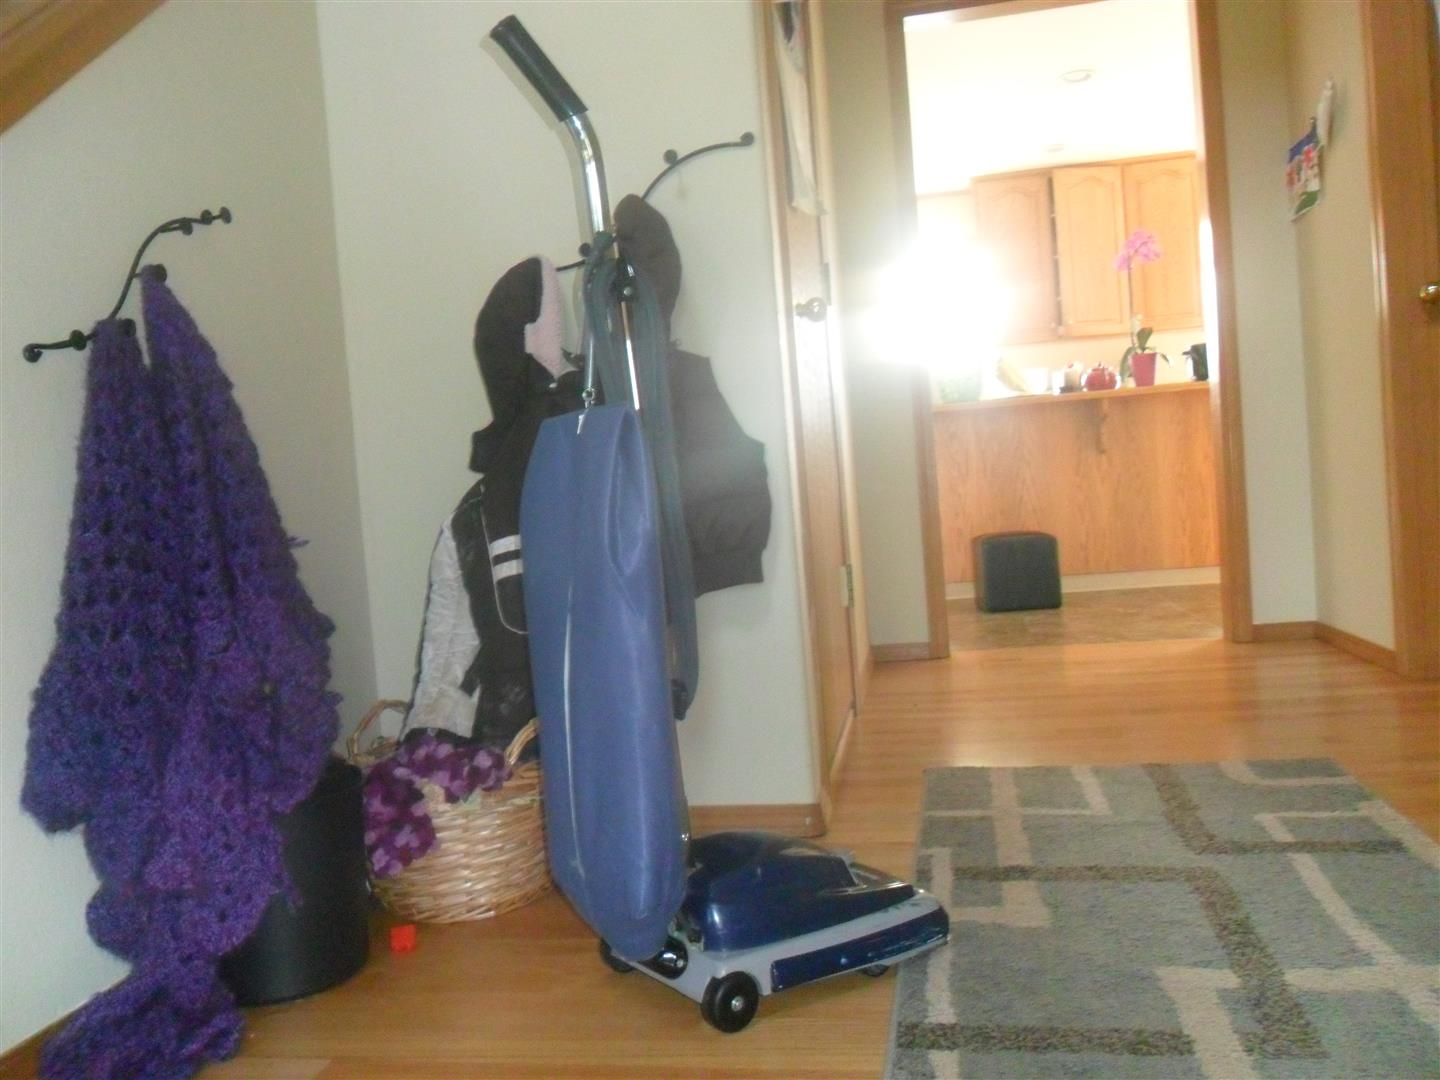 Our loaner vacuum. SO HAPPY to have my vacuum back from the shop!